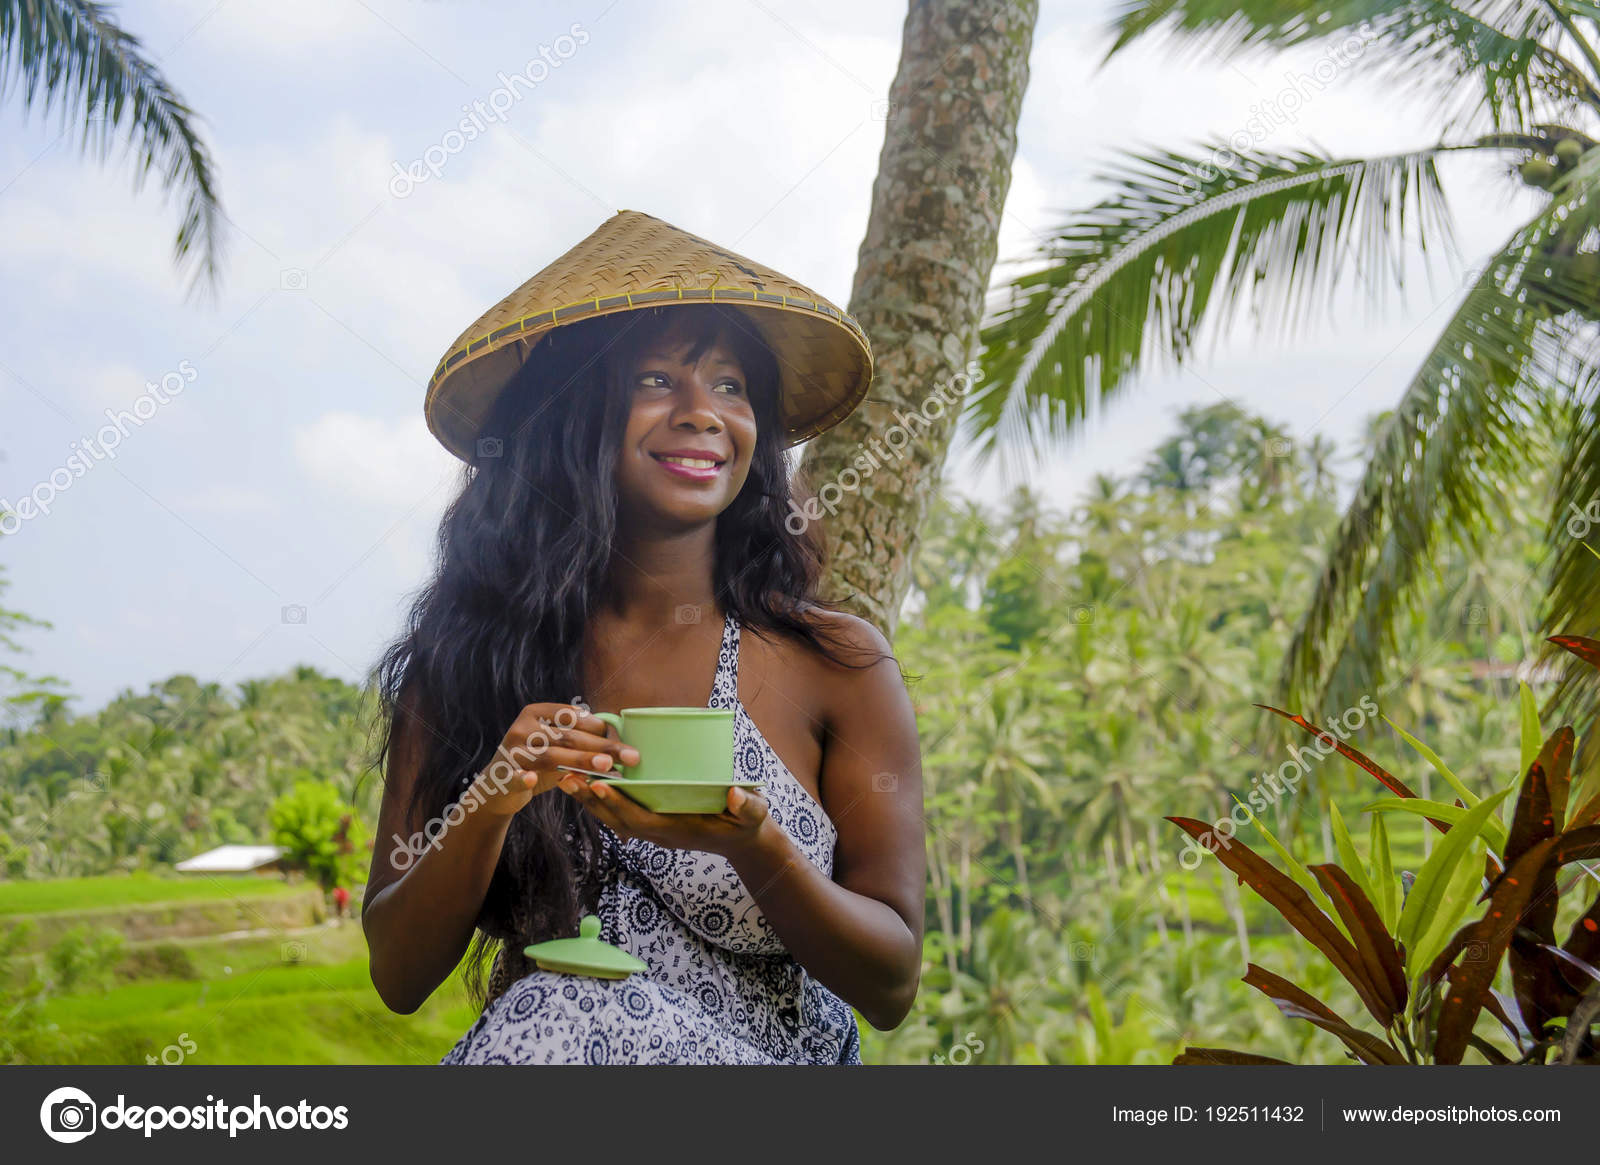 El oasis  a la morena   Depositphotos_192511432-stock-photo-young-beautiful-and-happy-black